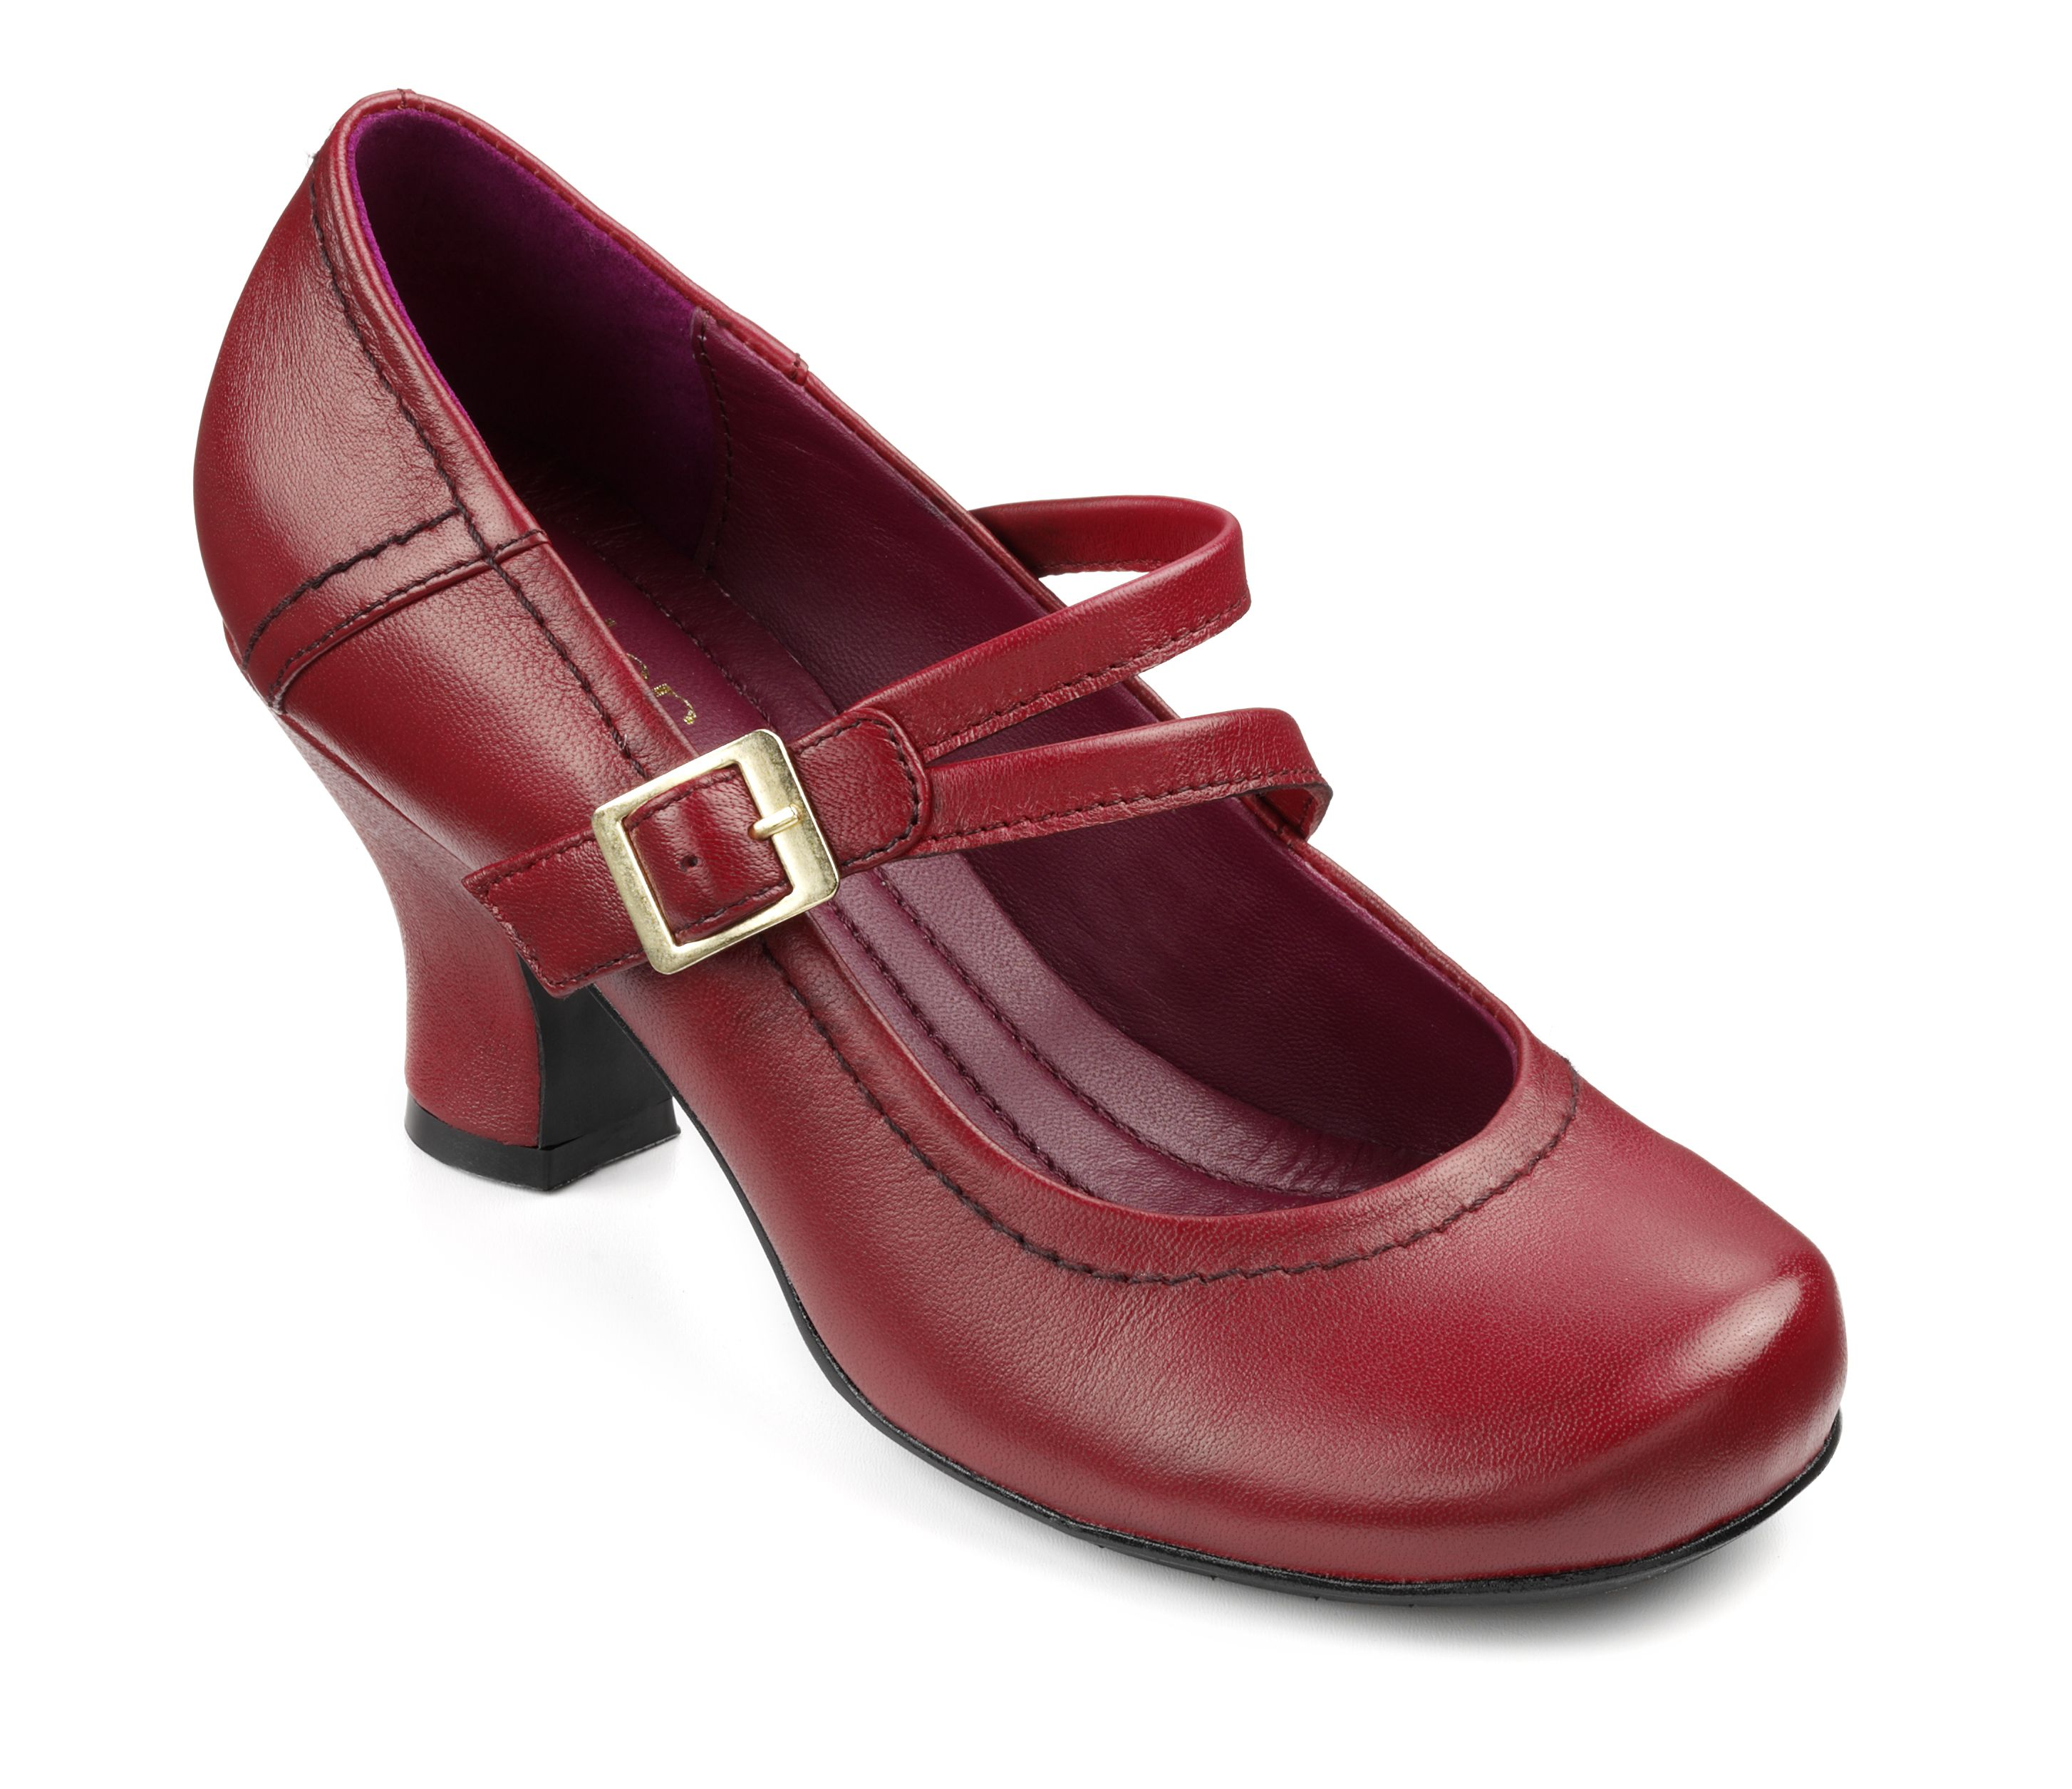 2b406489cc74a Vanessa - Chilli Red - Hotter Shoes | Stuff to wear... | Shoes ...